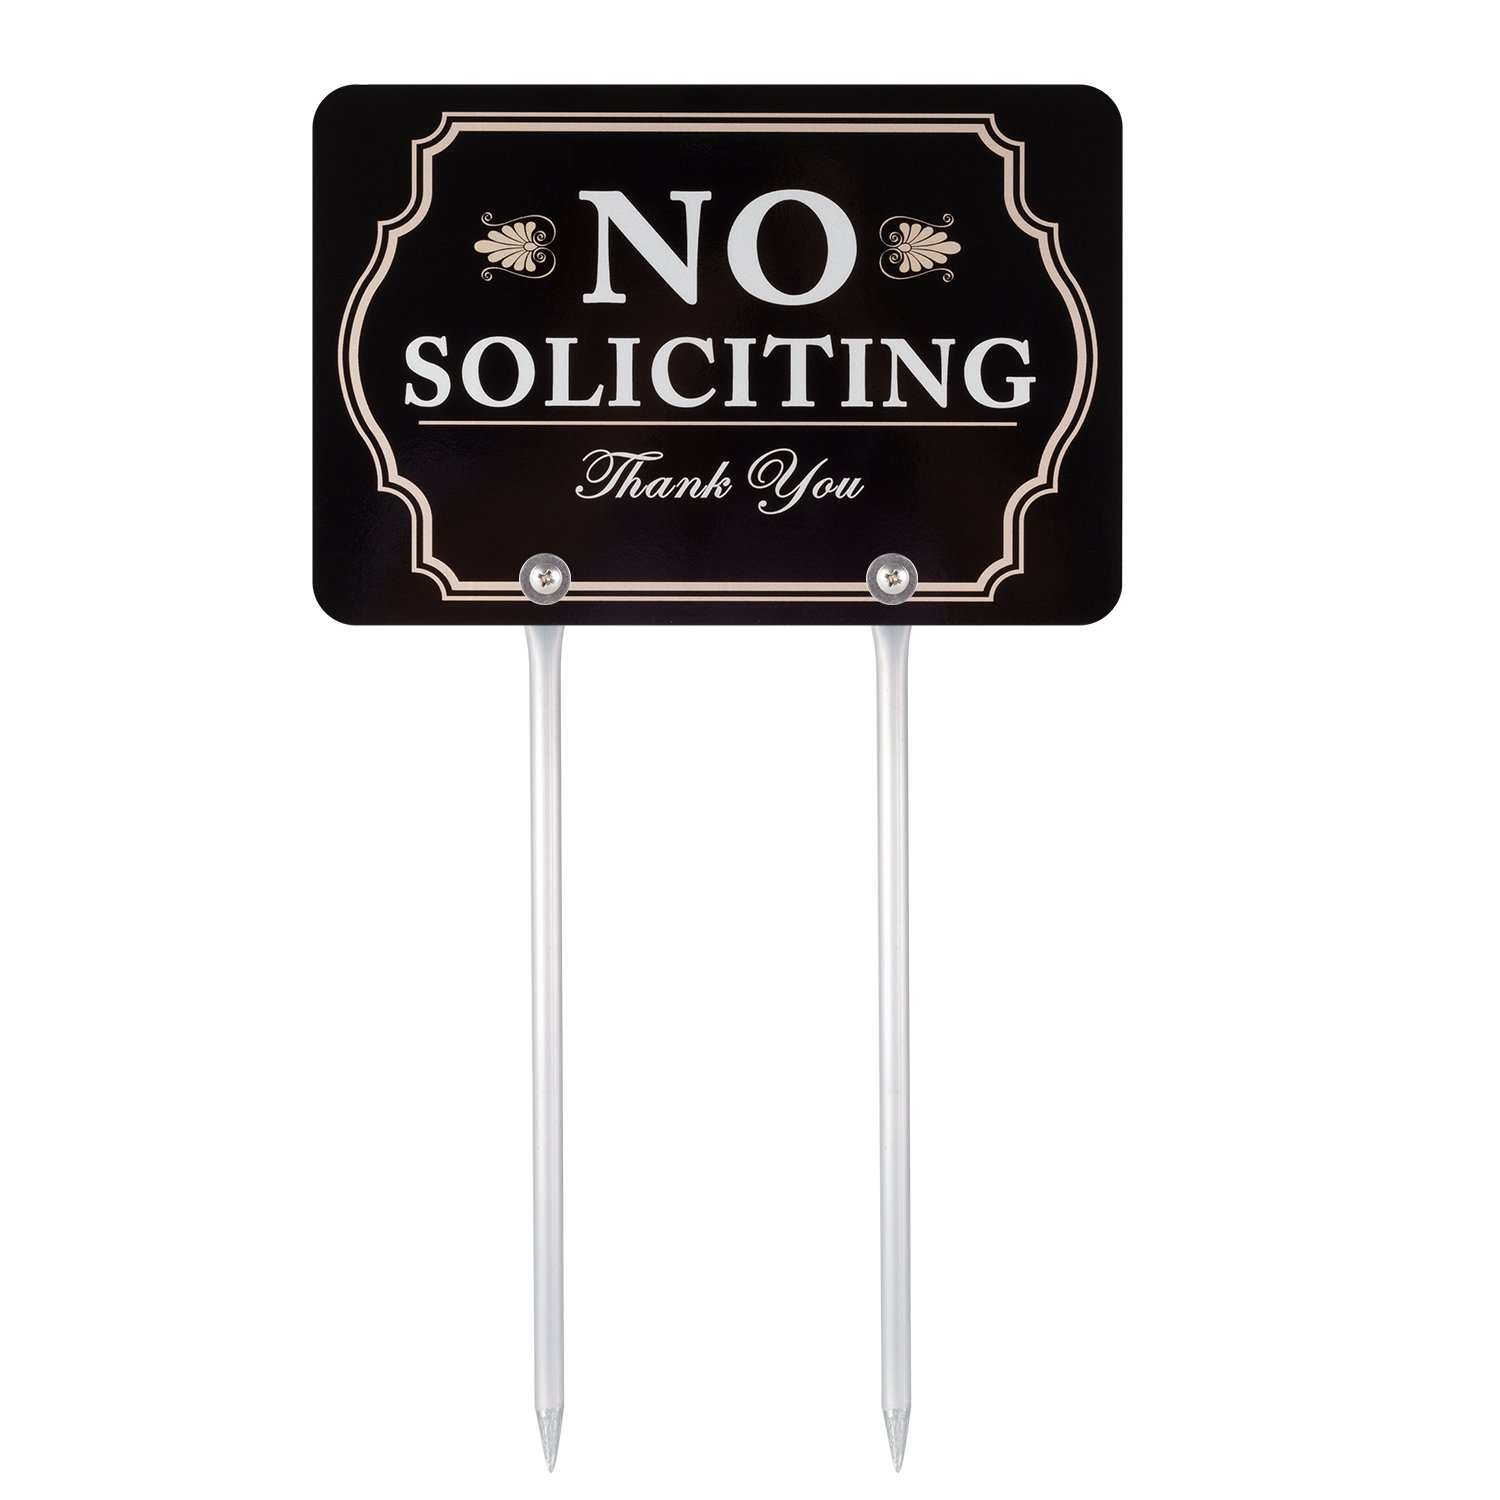 "Kichwit No Soliciting Sign for Yard, Aluminum, All Metal Construction, Sign Measures 11.8"" x 7.9"", 14"" Long Metal Stakes Included"